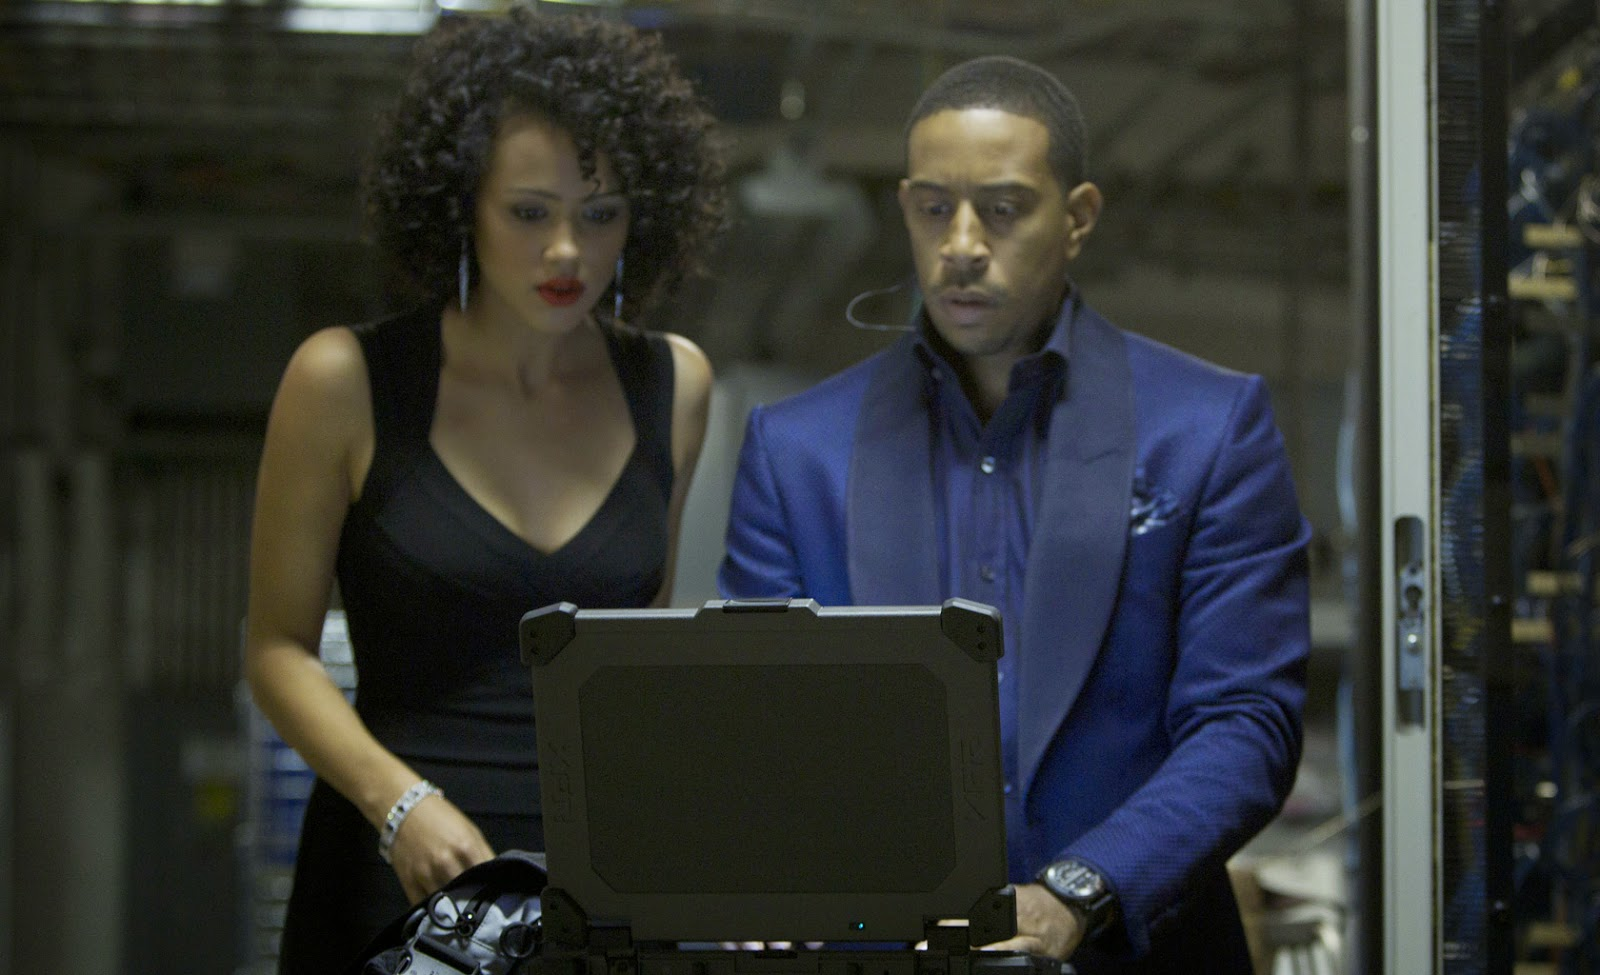 Download video fast and furious 7 full movie free